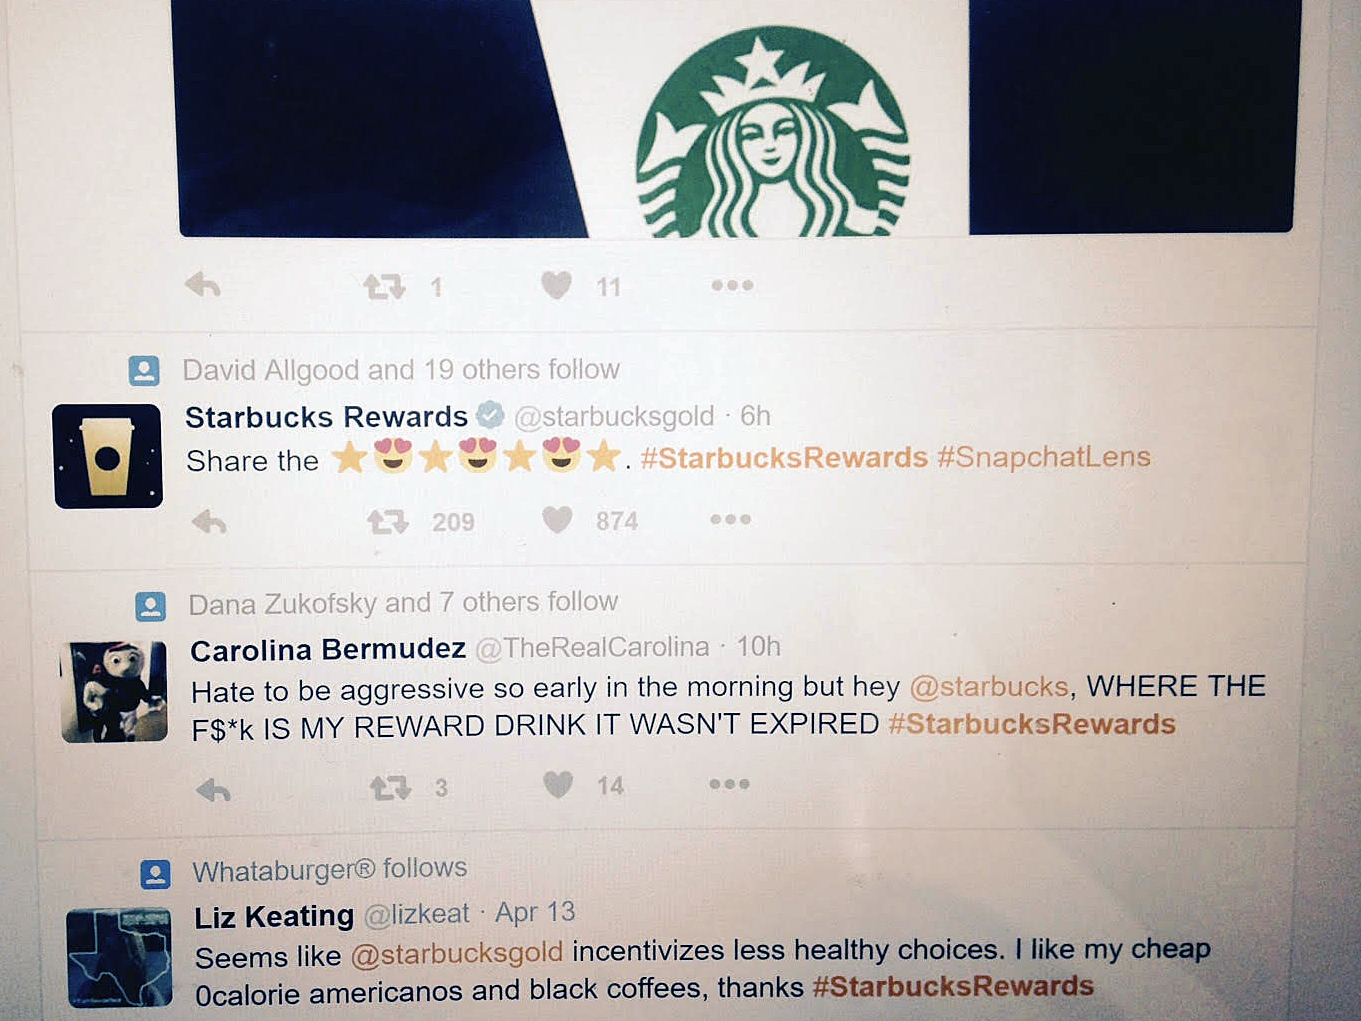 Starbucks: Loyalty Innovation Shatters Customer Expectations of Convenience